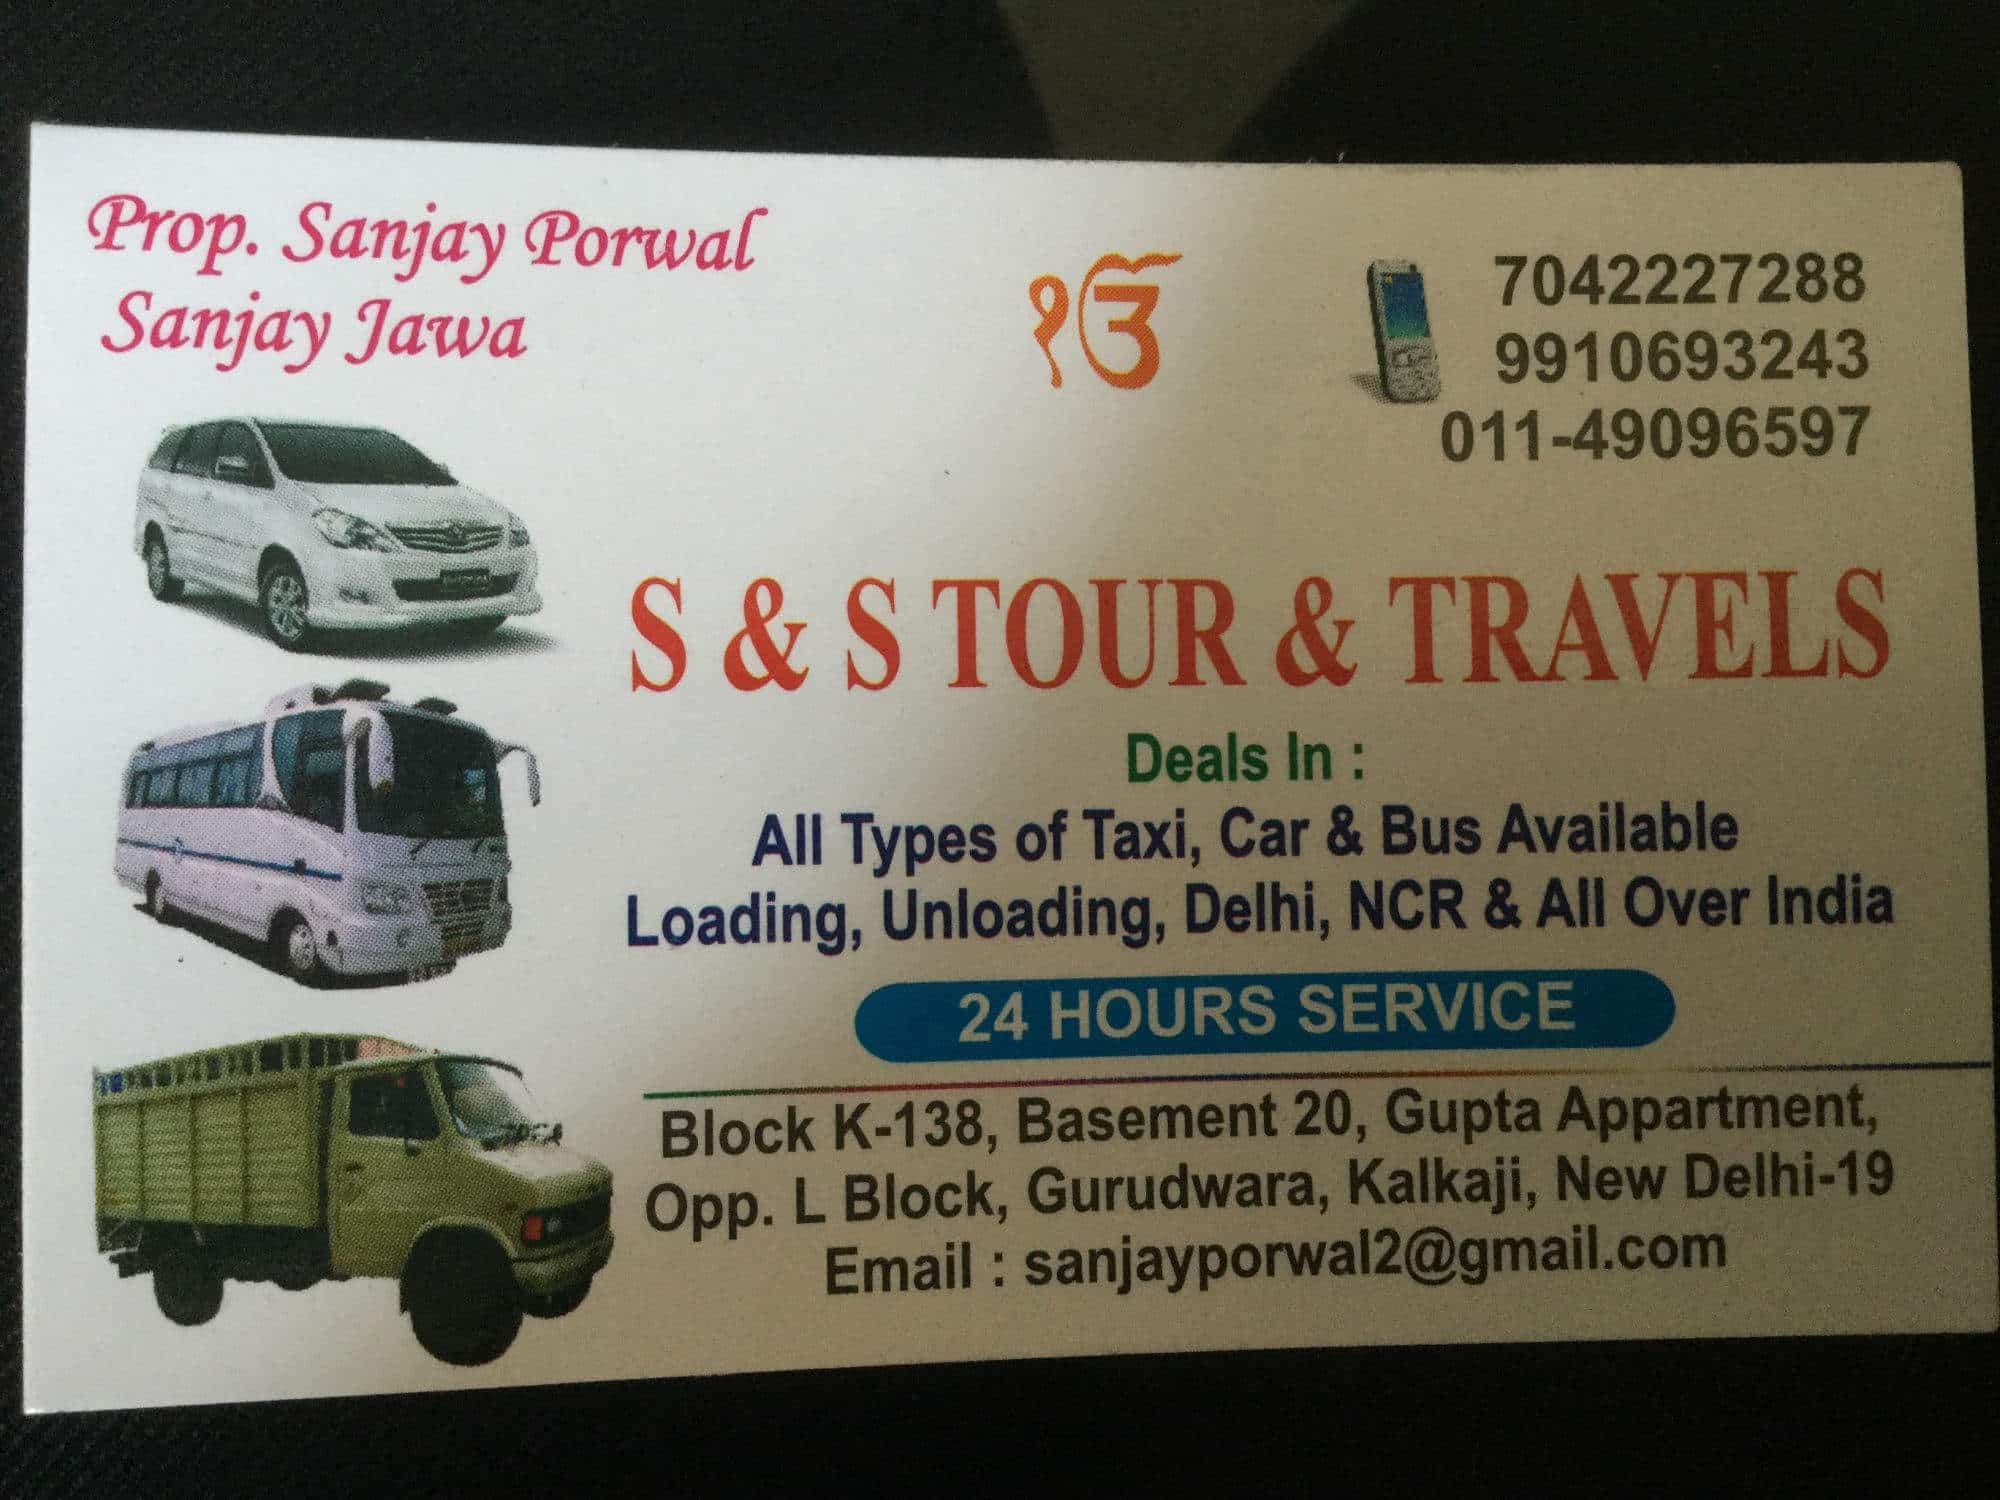 S & S Tour & Travels Kalkaji Travel Agents in Delhi Justdial